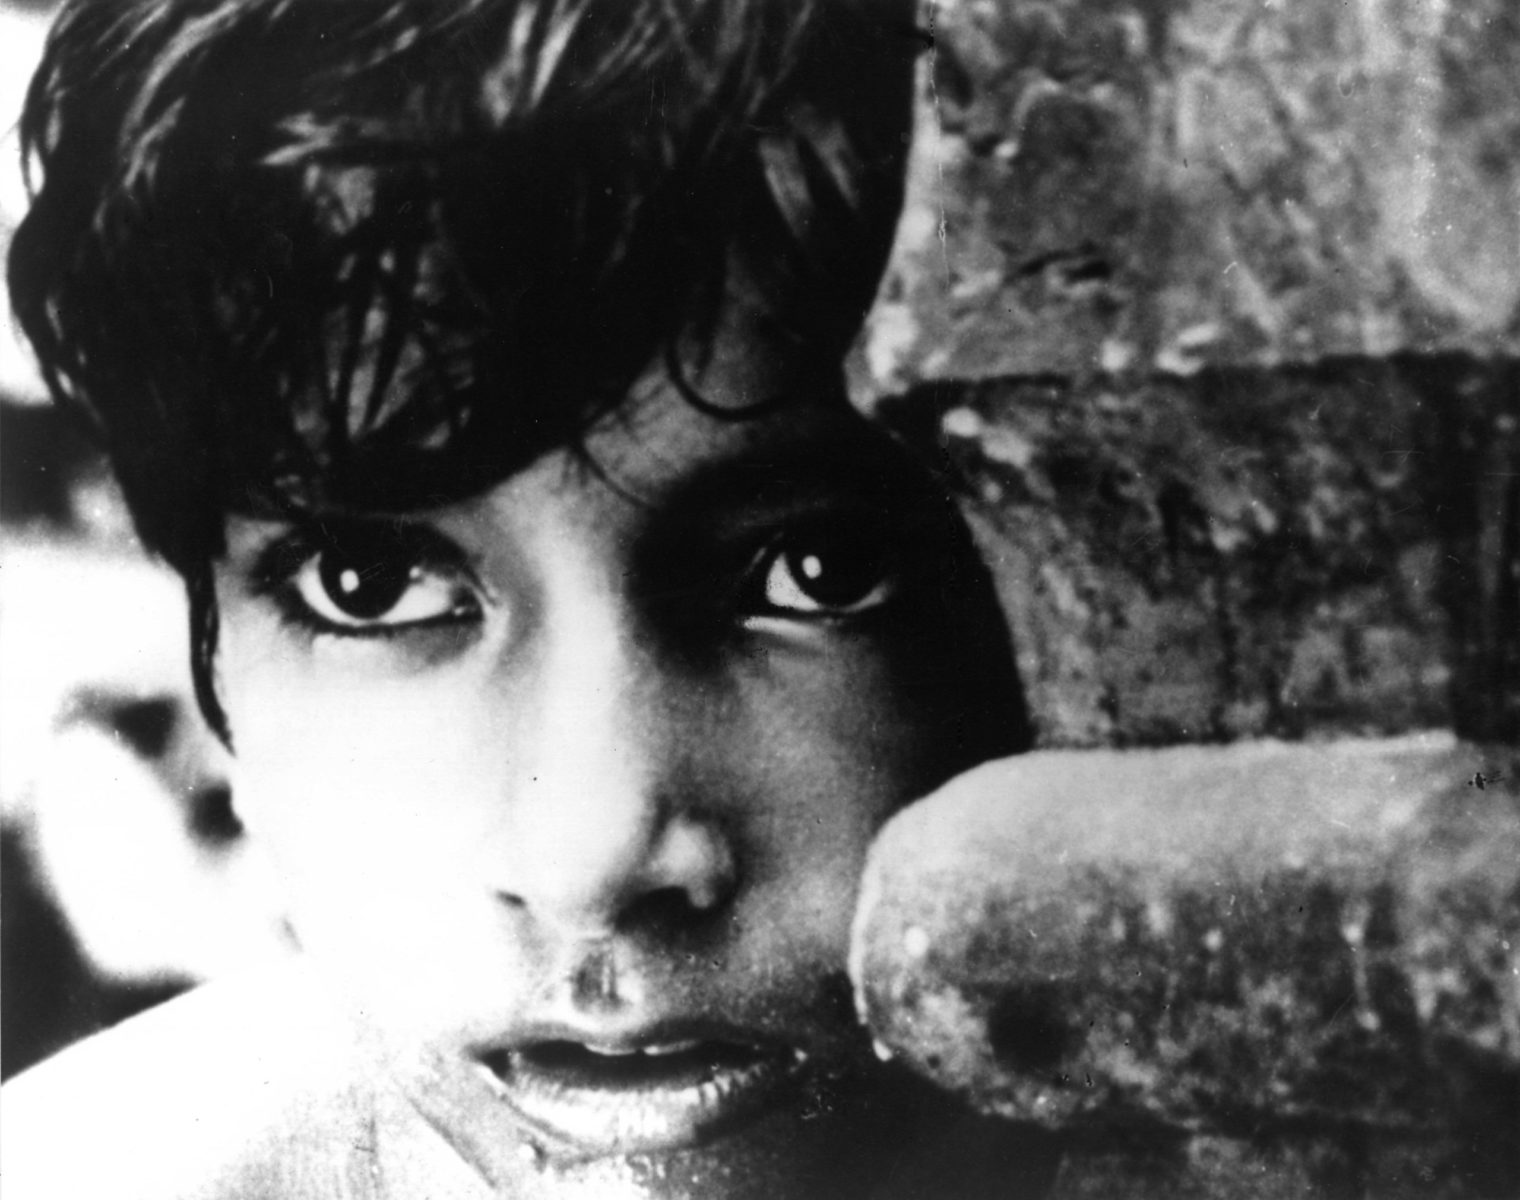 Pather Panchali Satyajit RAY (1955)